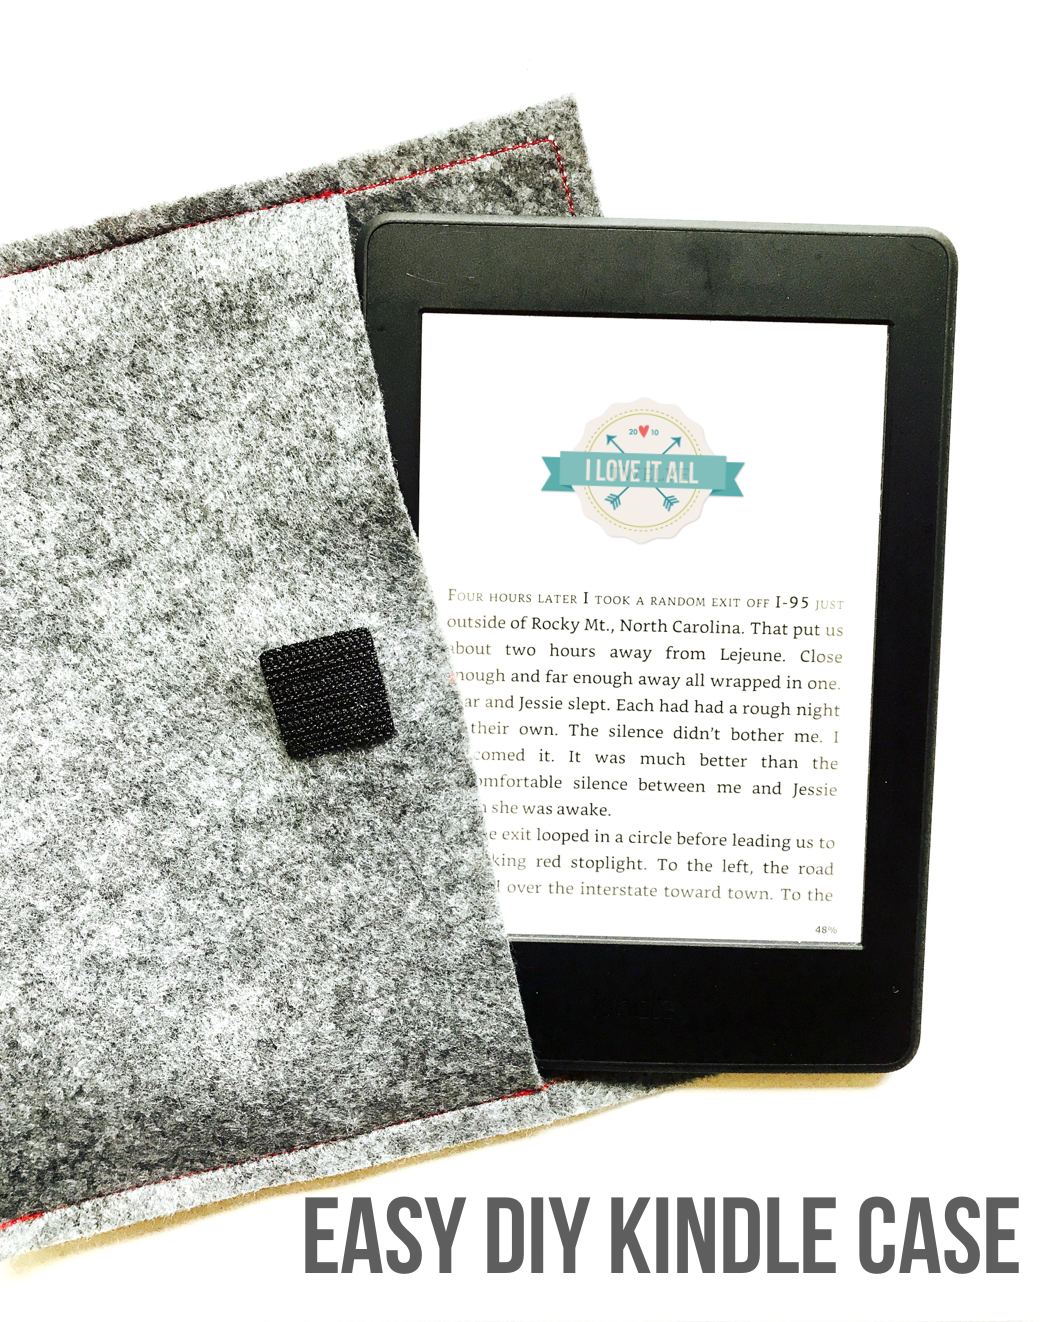 #easy #DIY #felt #sewing #paperwhite #tutorial #kindle #cover